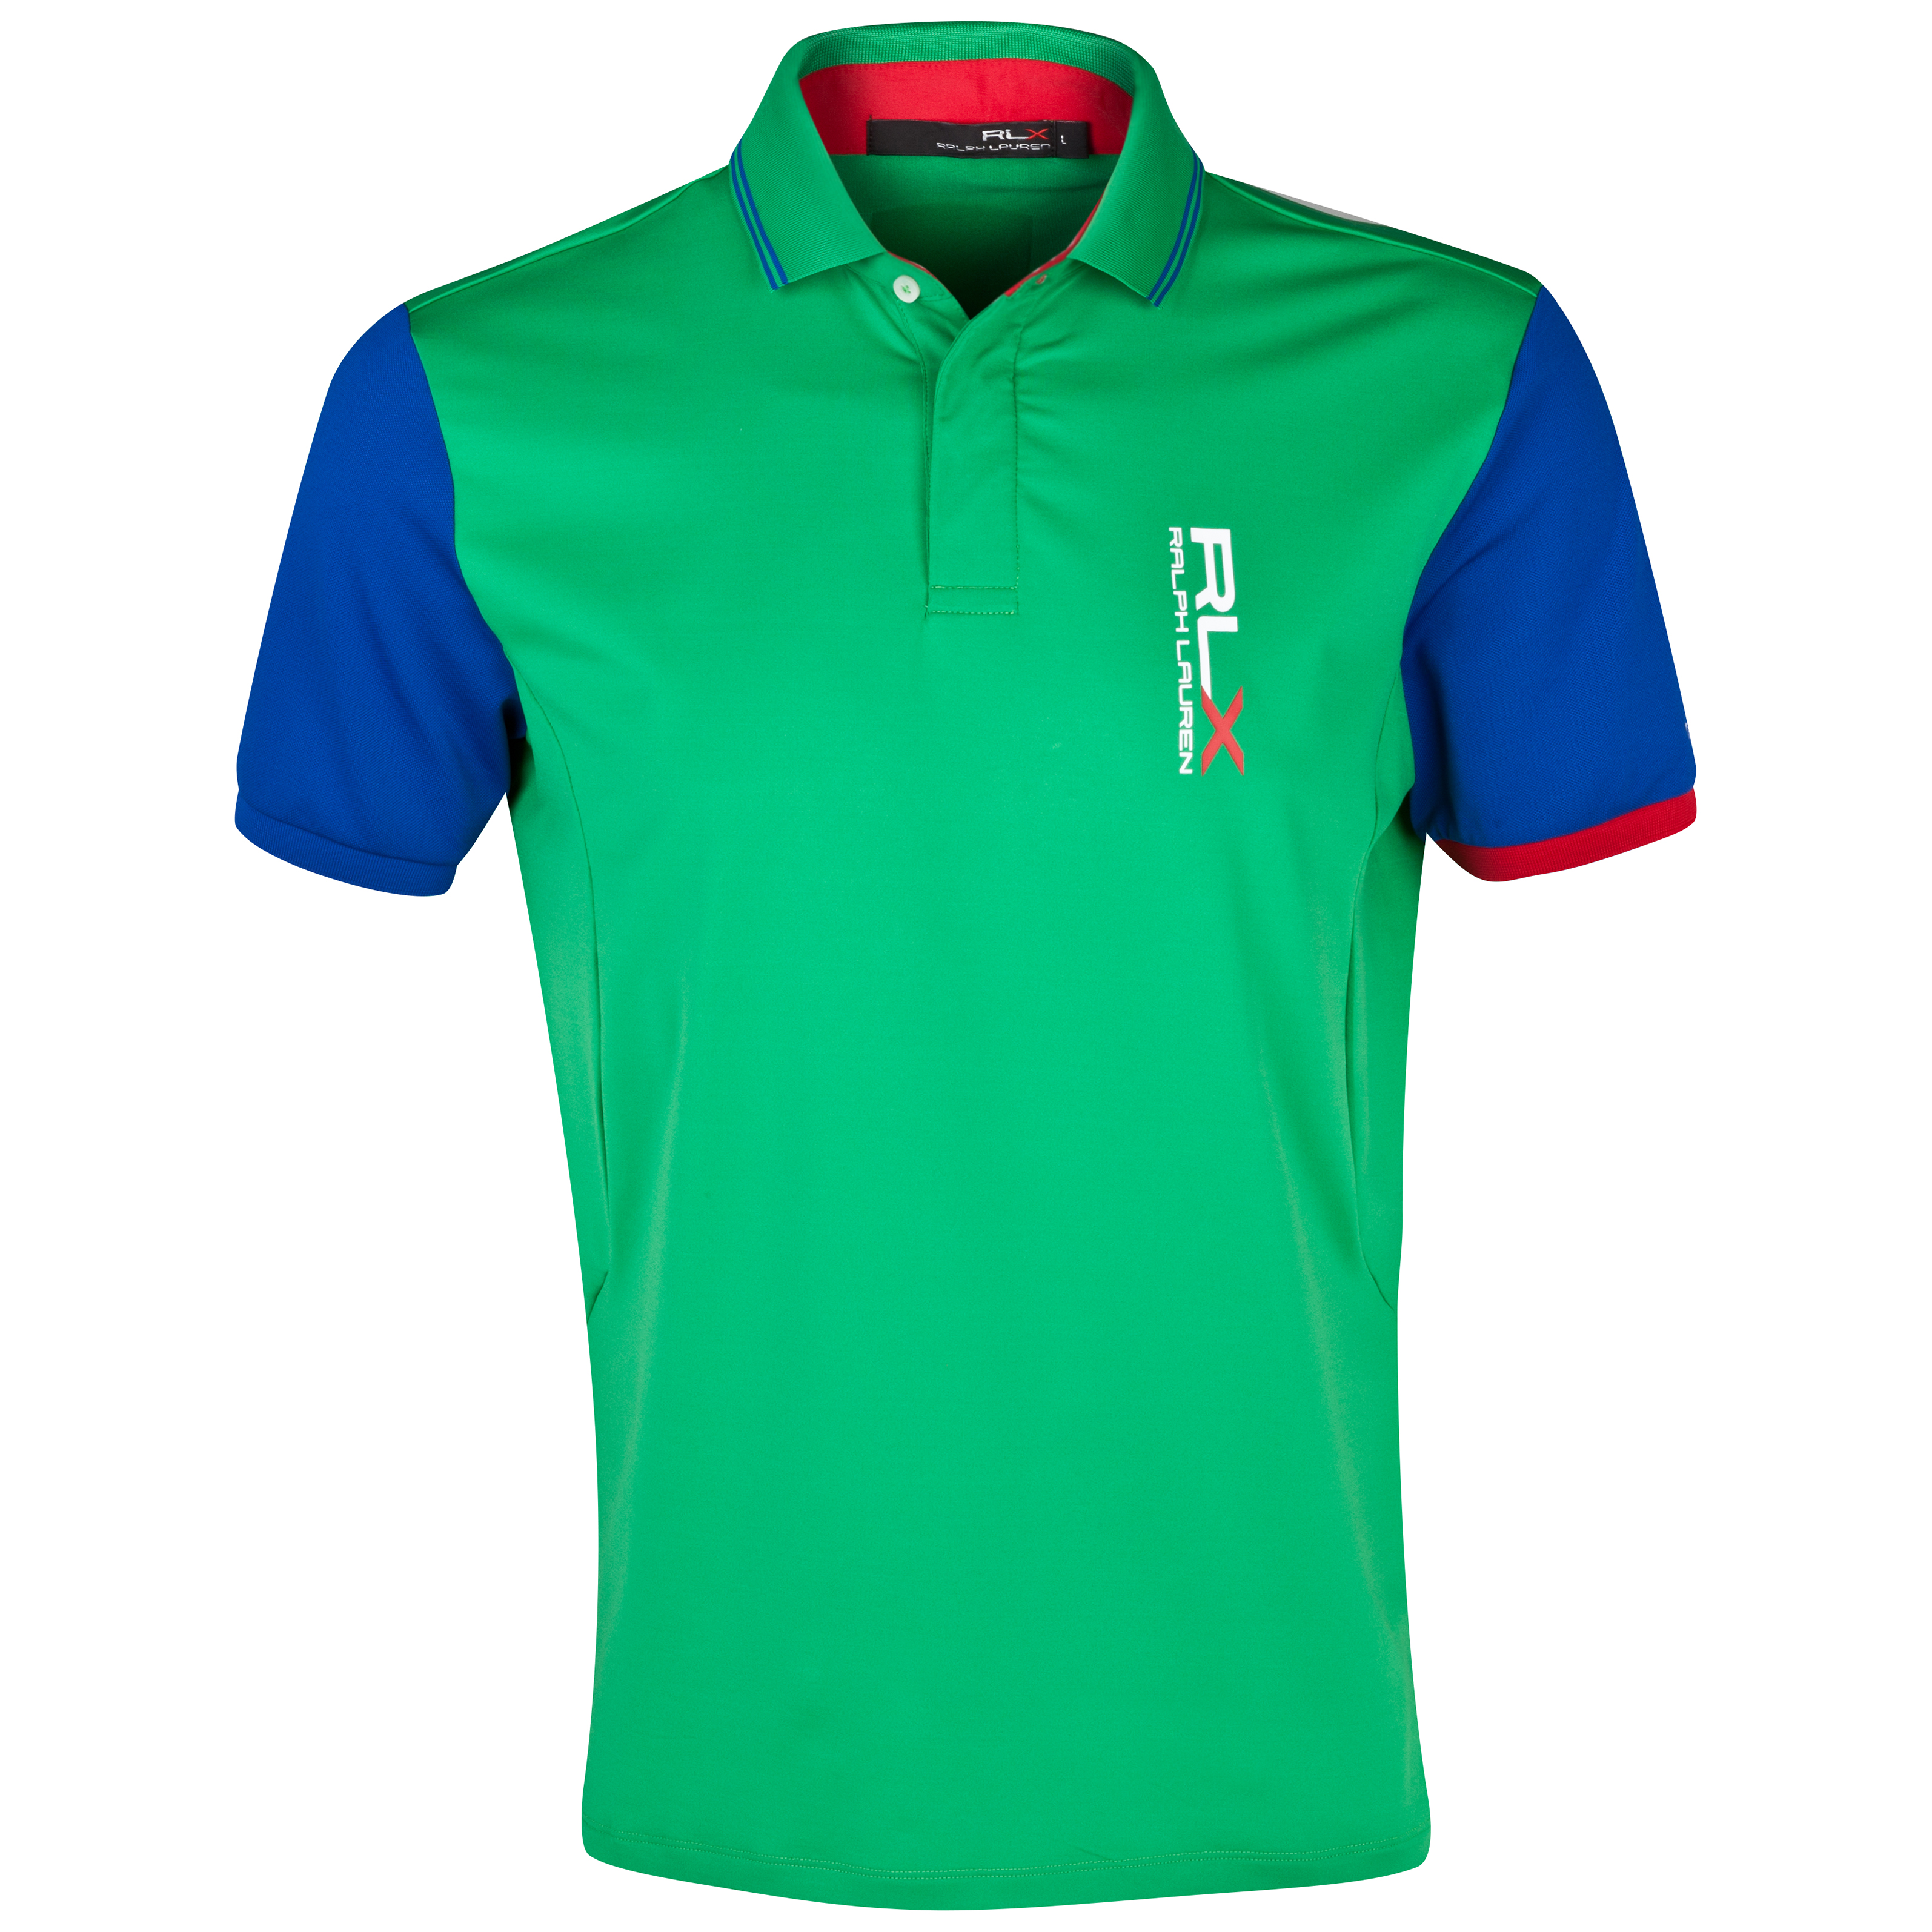 Open Golf The Open Championship 2013 Muirfield Ralph Lauren RLX Italy Polo Green